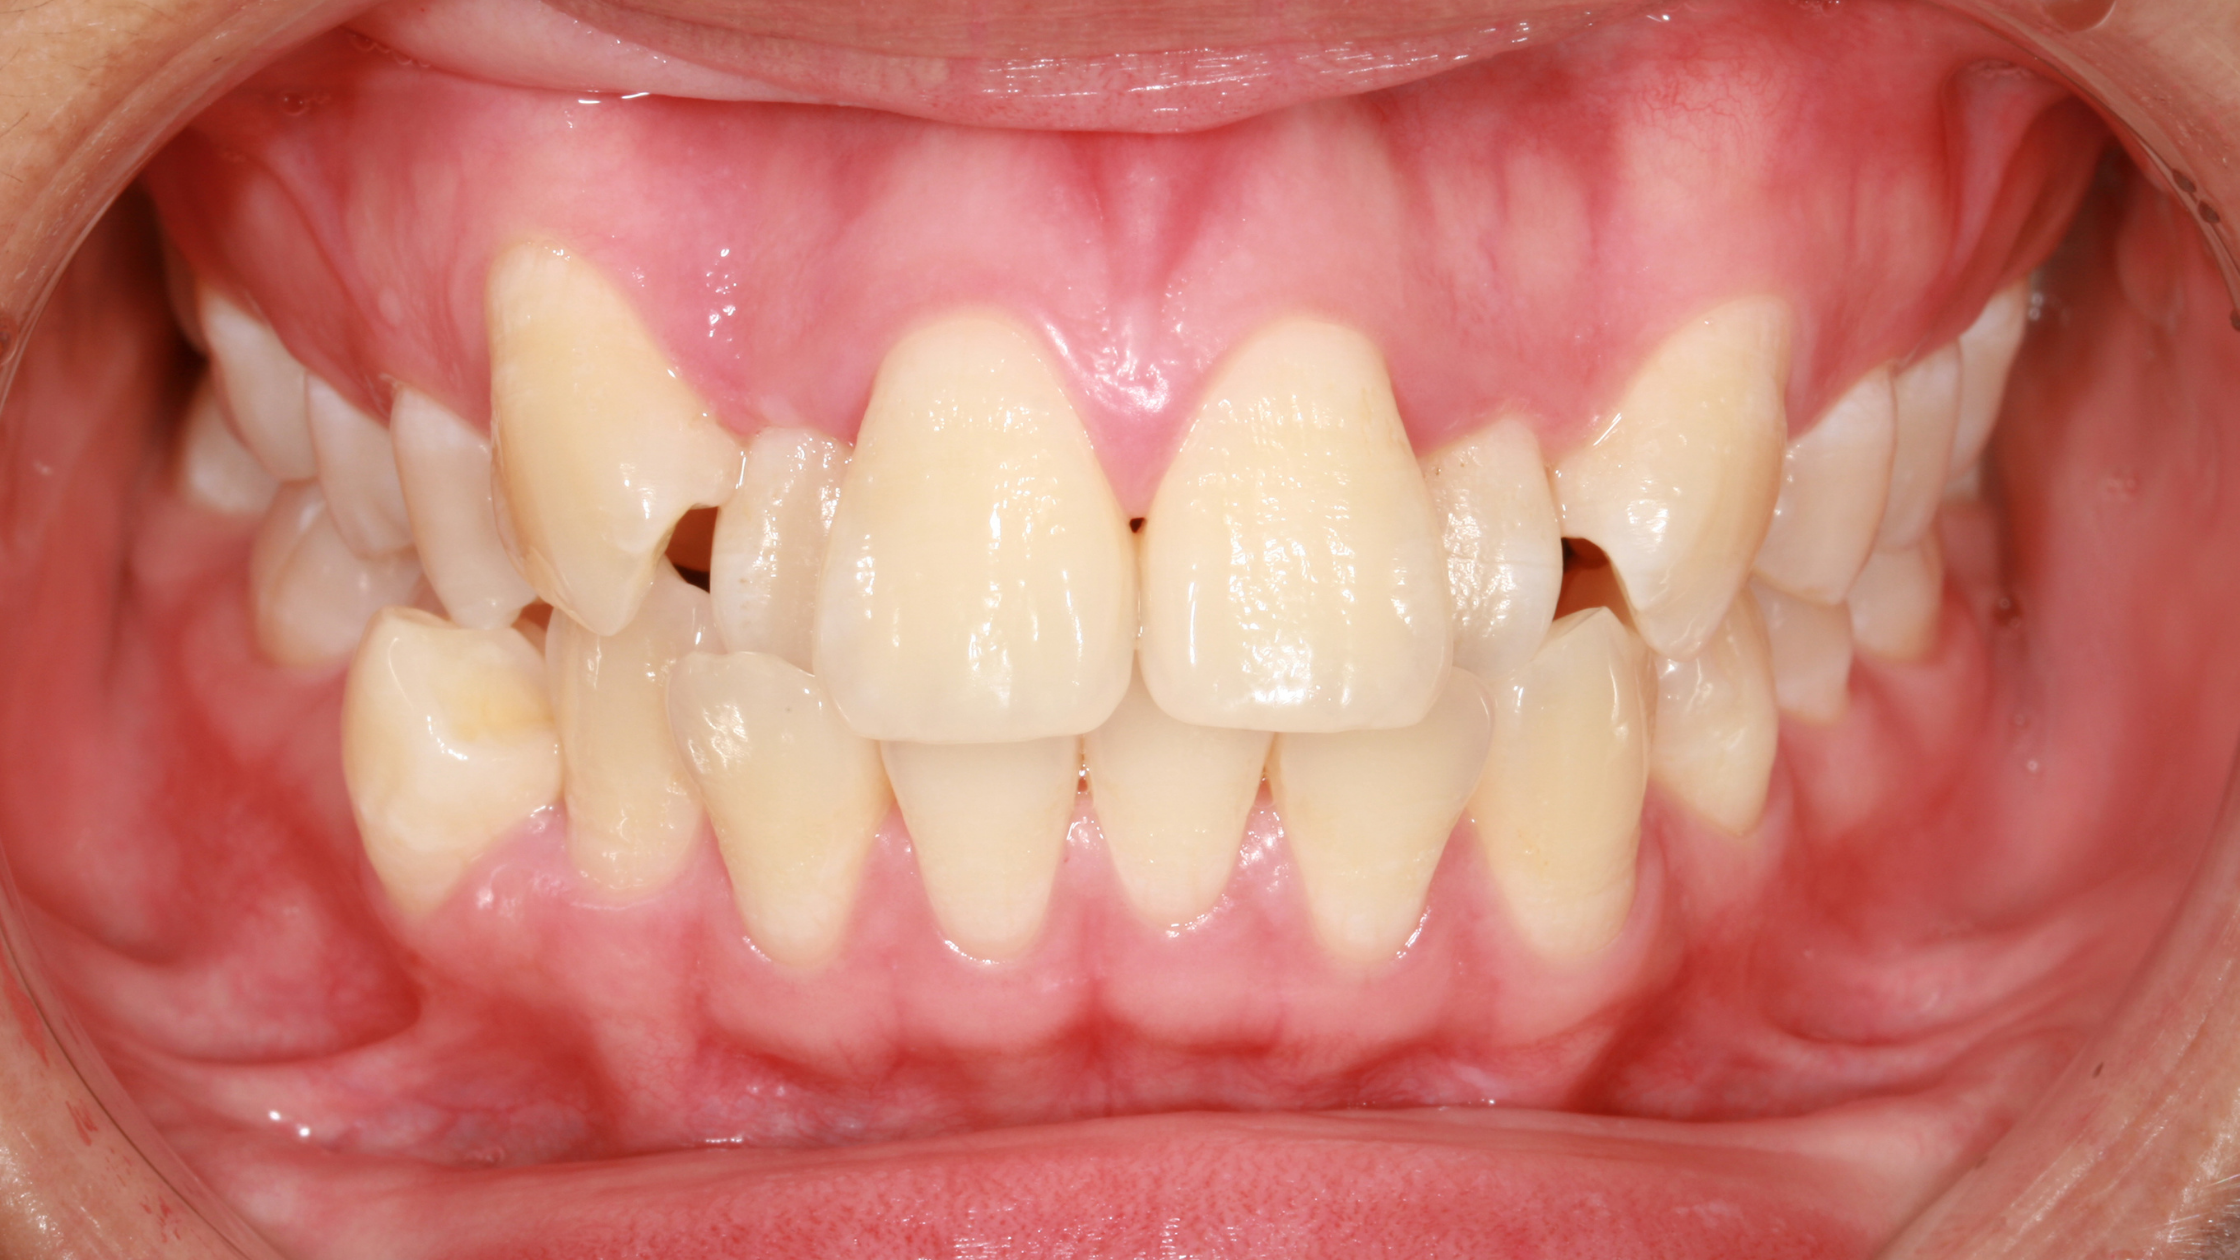 crowded teeth in a mouth